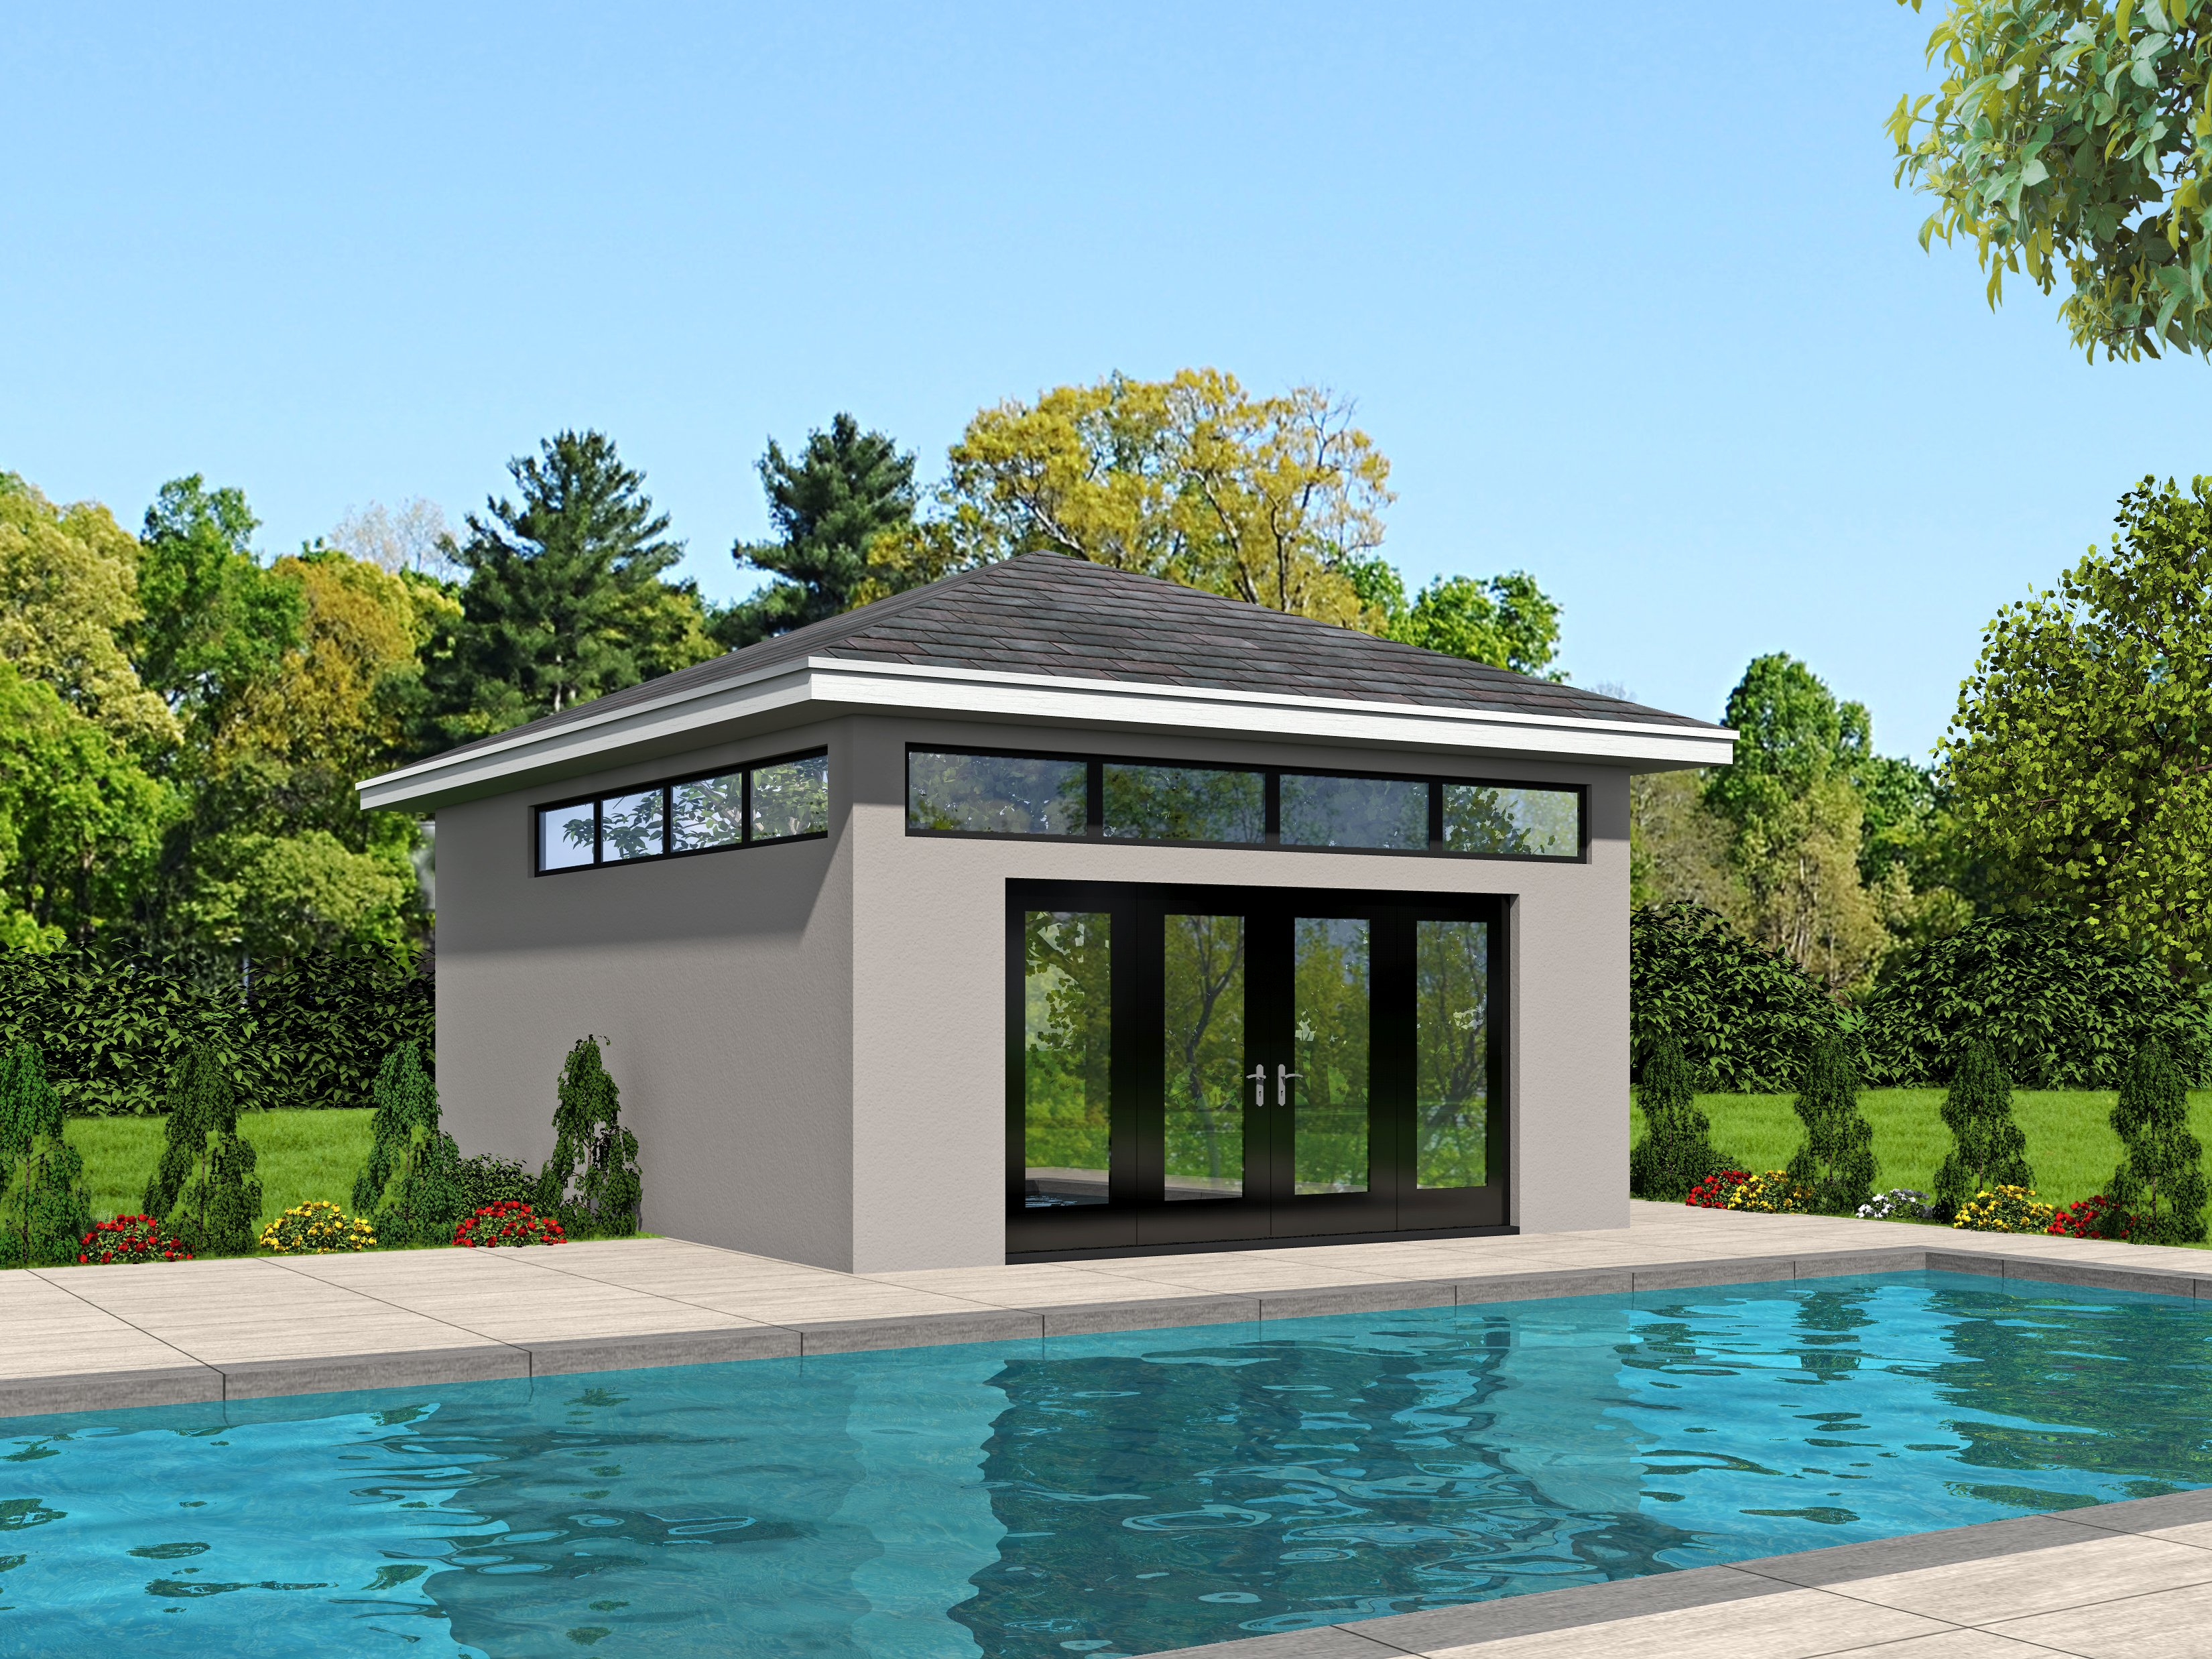 Pool house plans house plans plus for Pool design blueprints